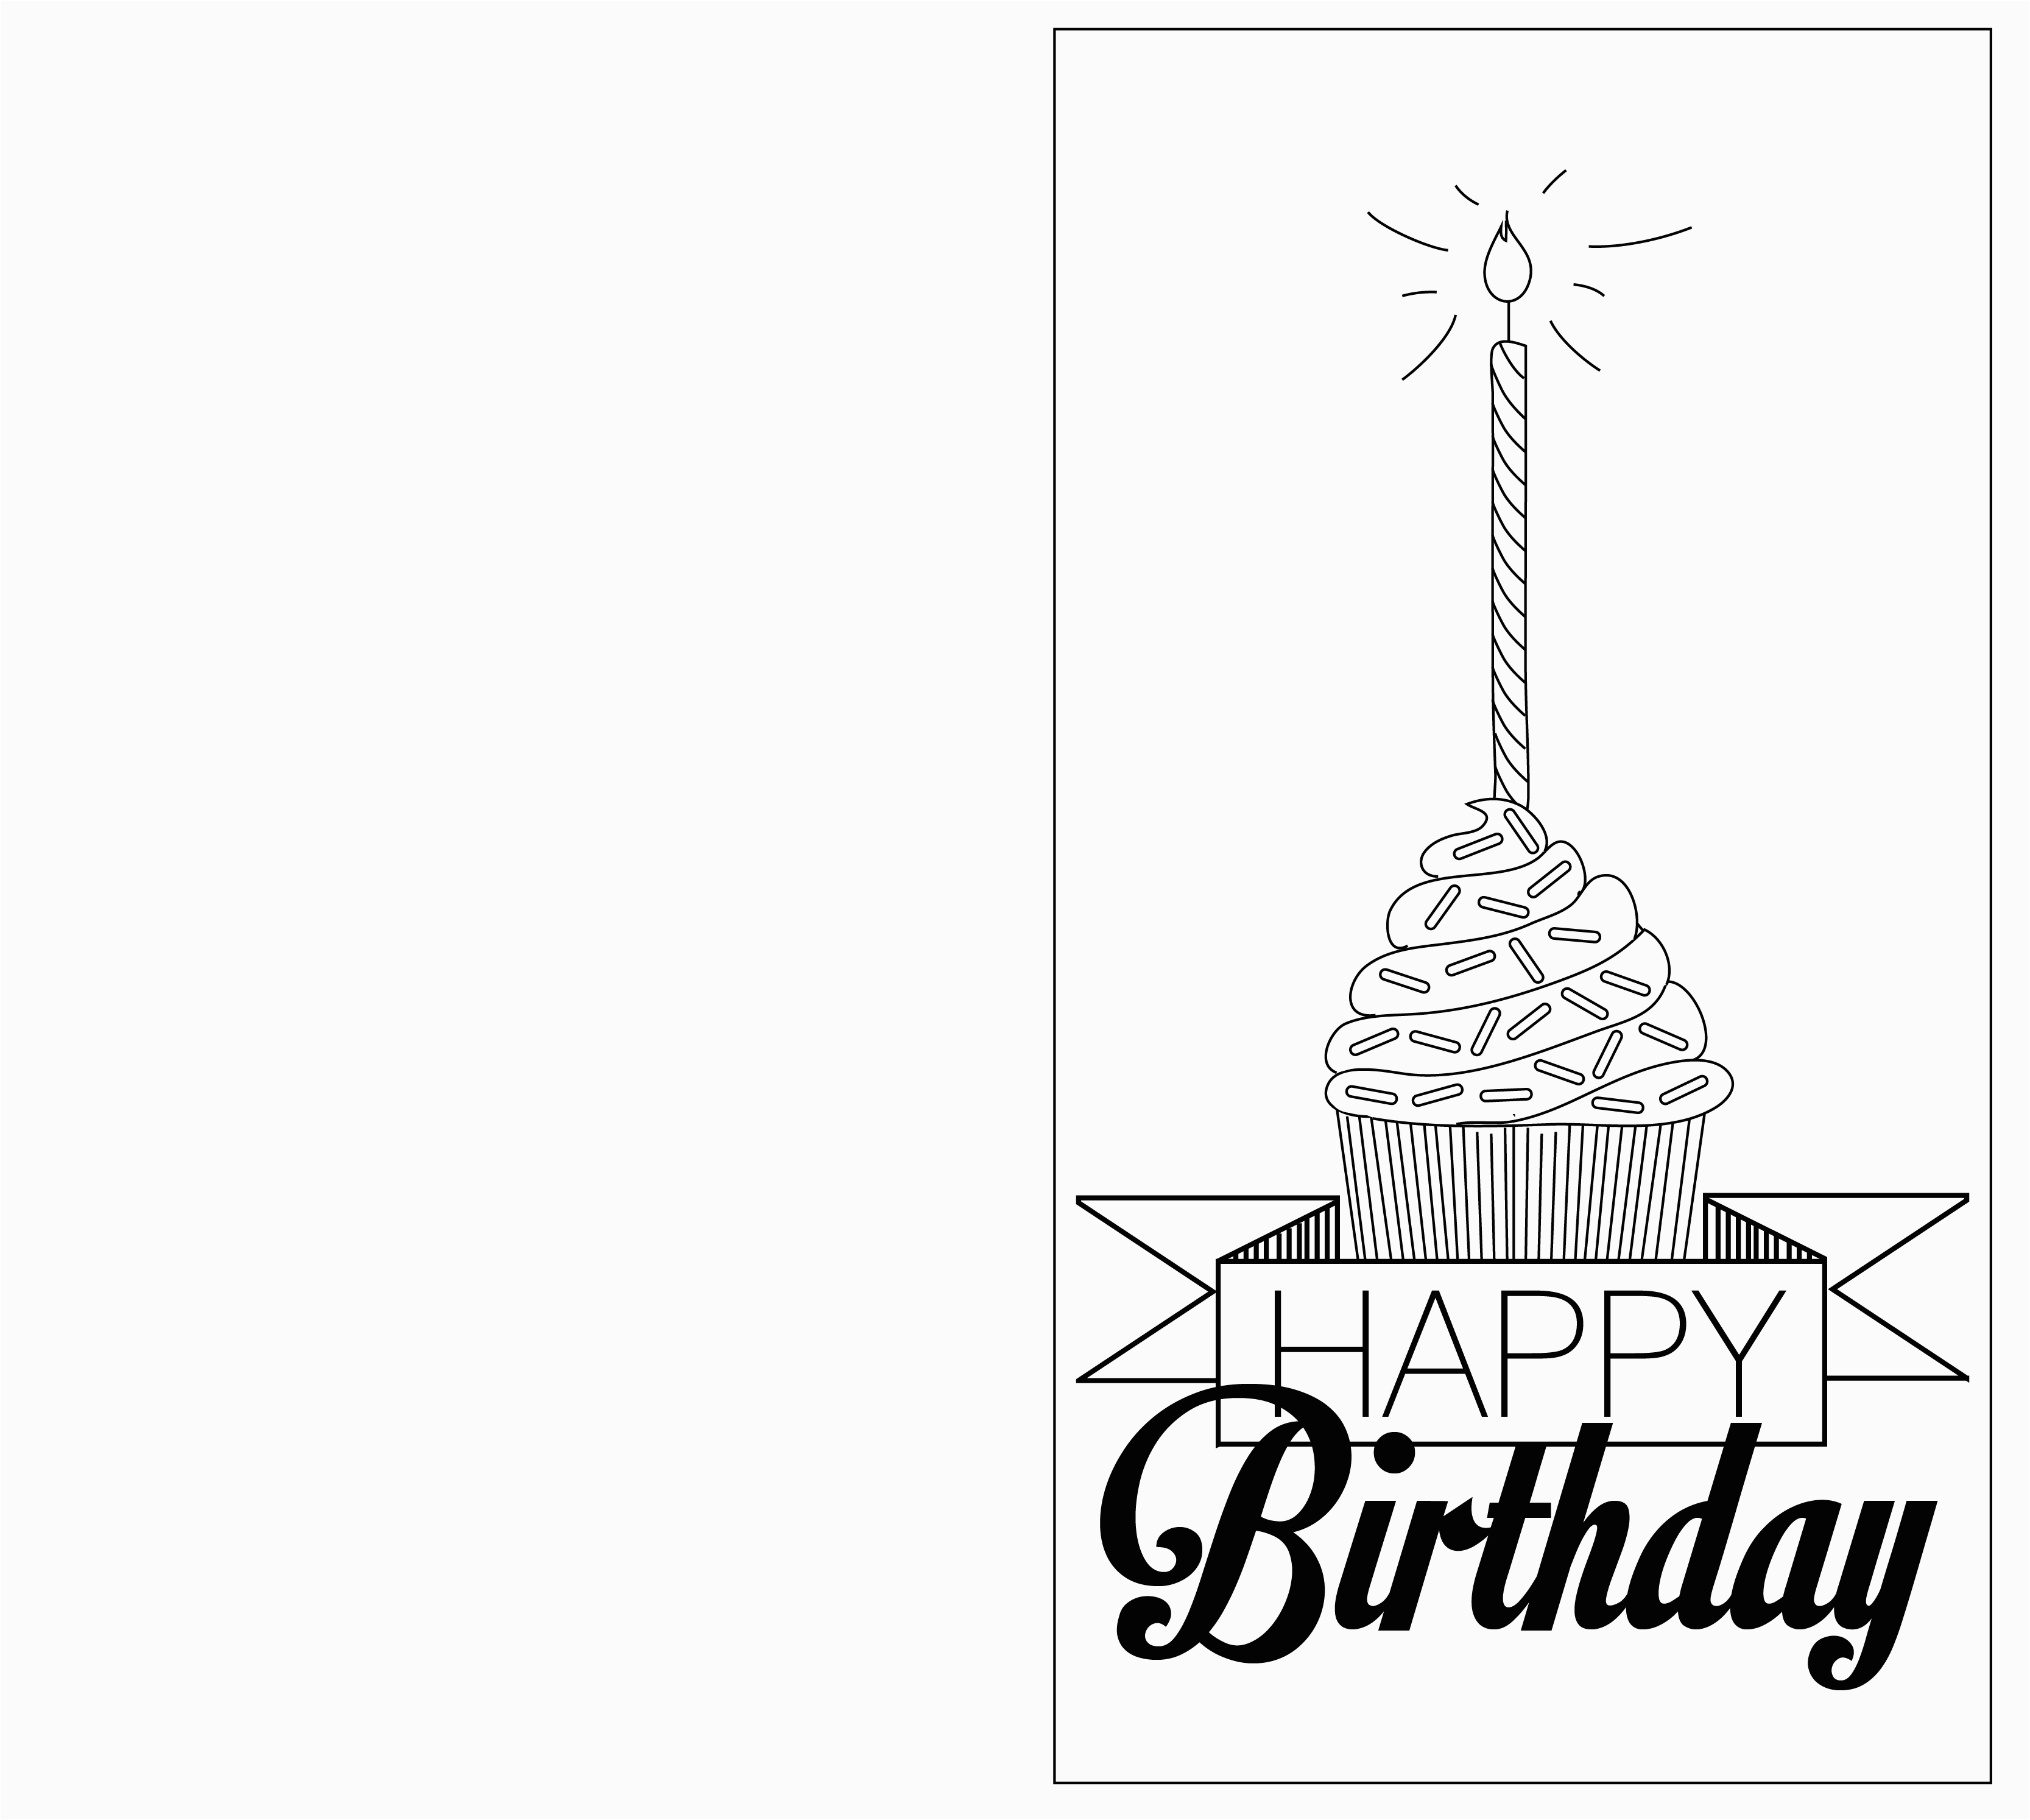 Black and White Birthday Cards Printable 6 Best Images Of Printable Folding Birthday Cards